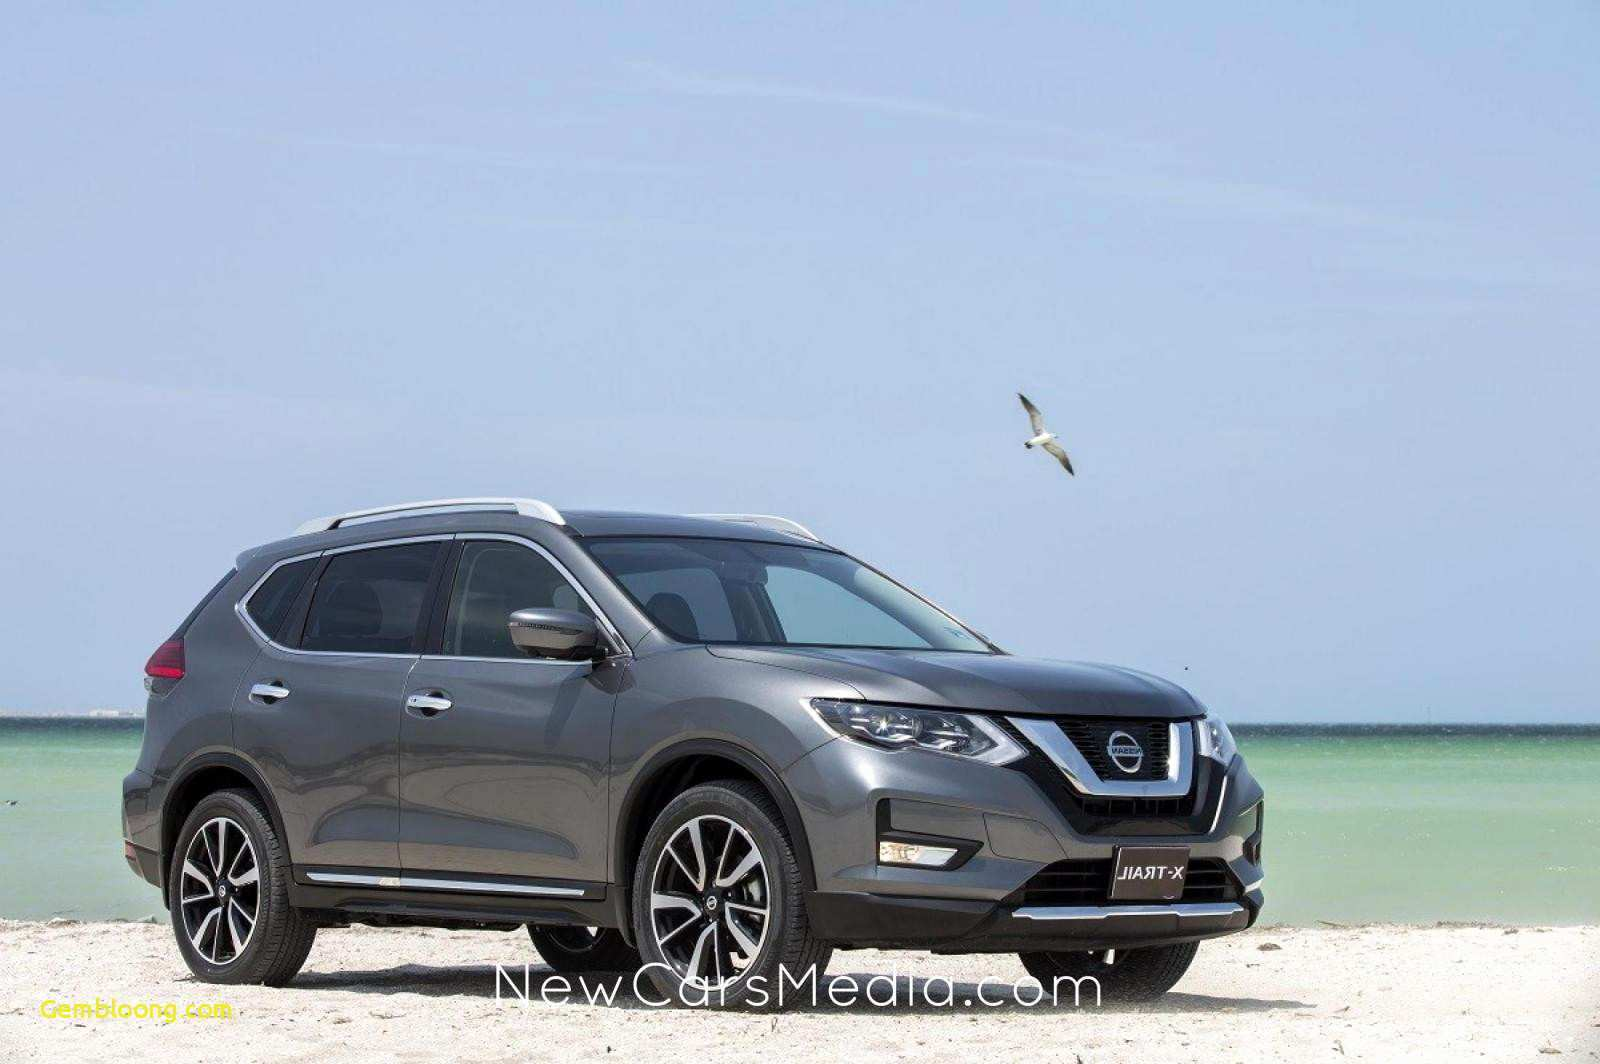 30 Great Nissan X Trail 2020 Reviews for Nissan X Trail 2020